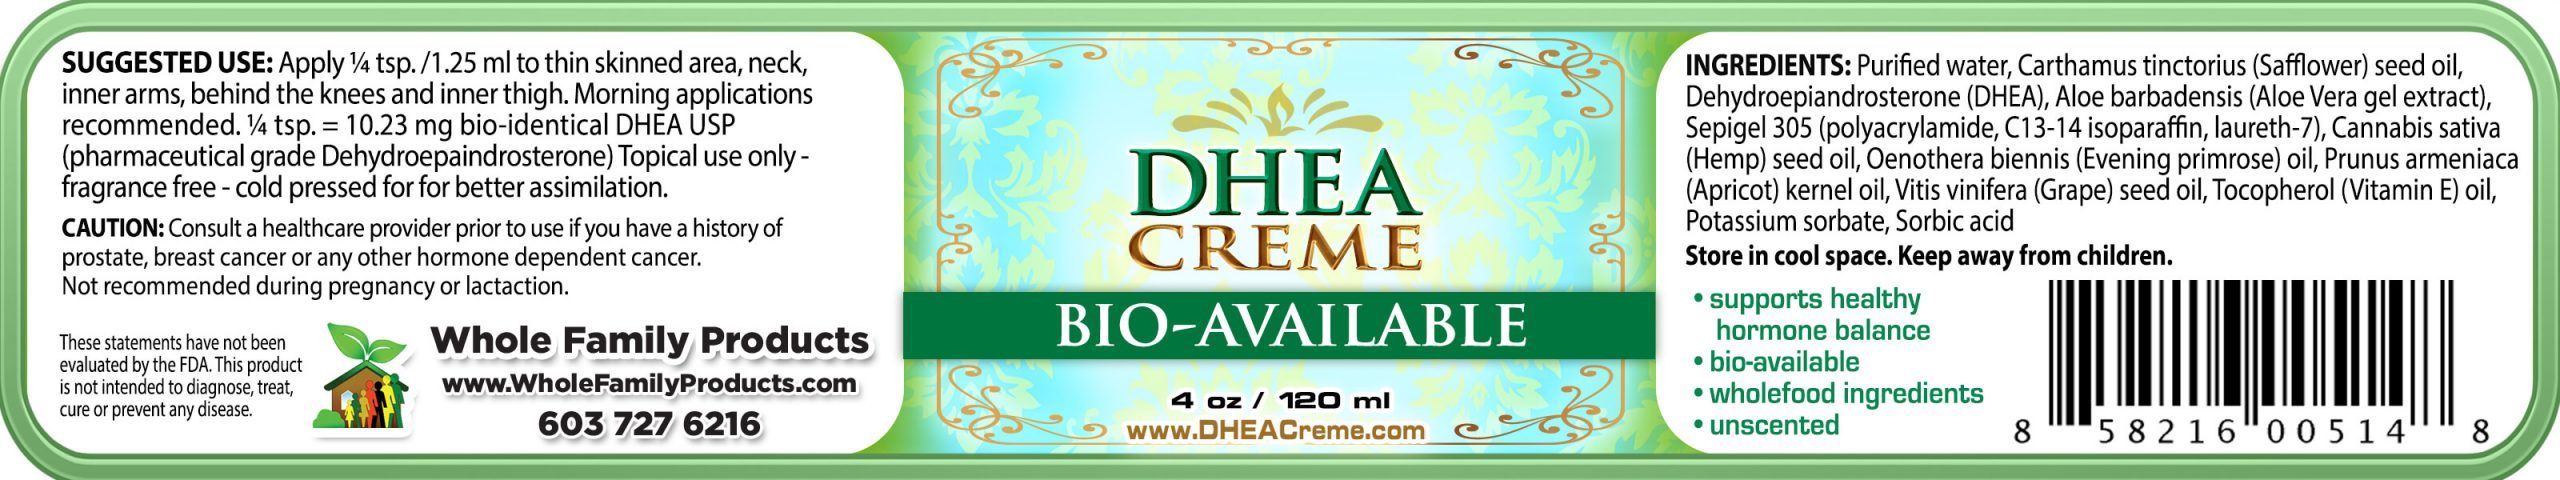 Best Dhea Cream 4oz Jar Label